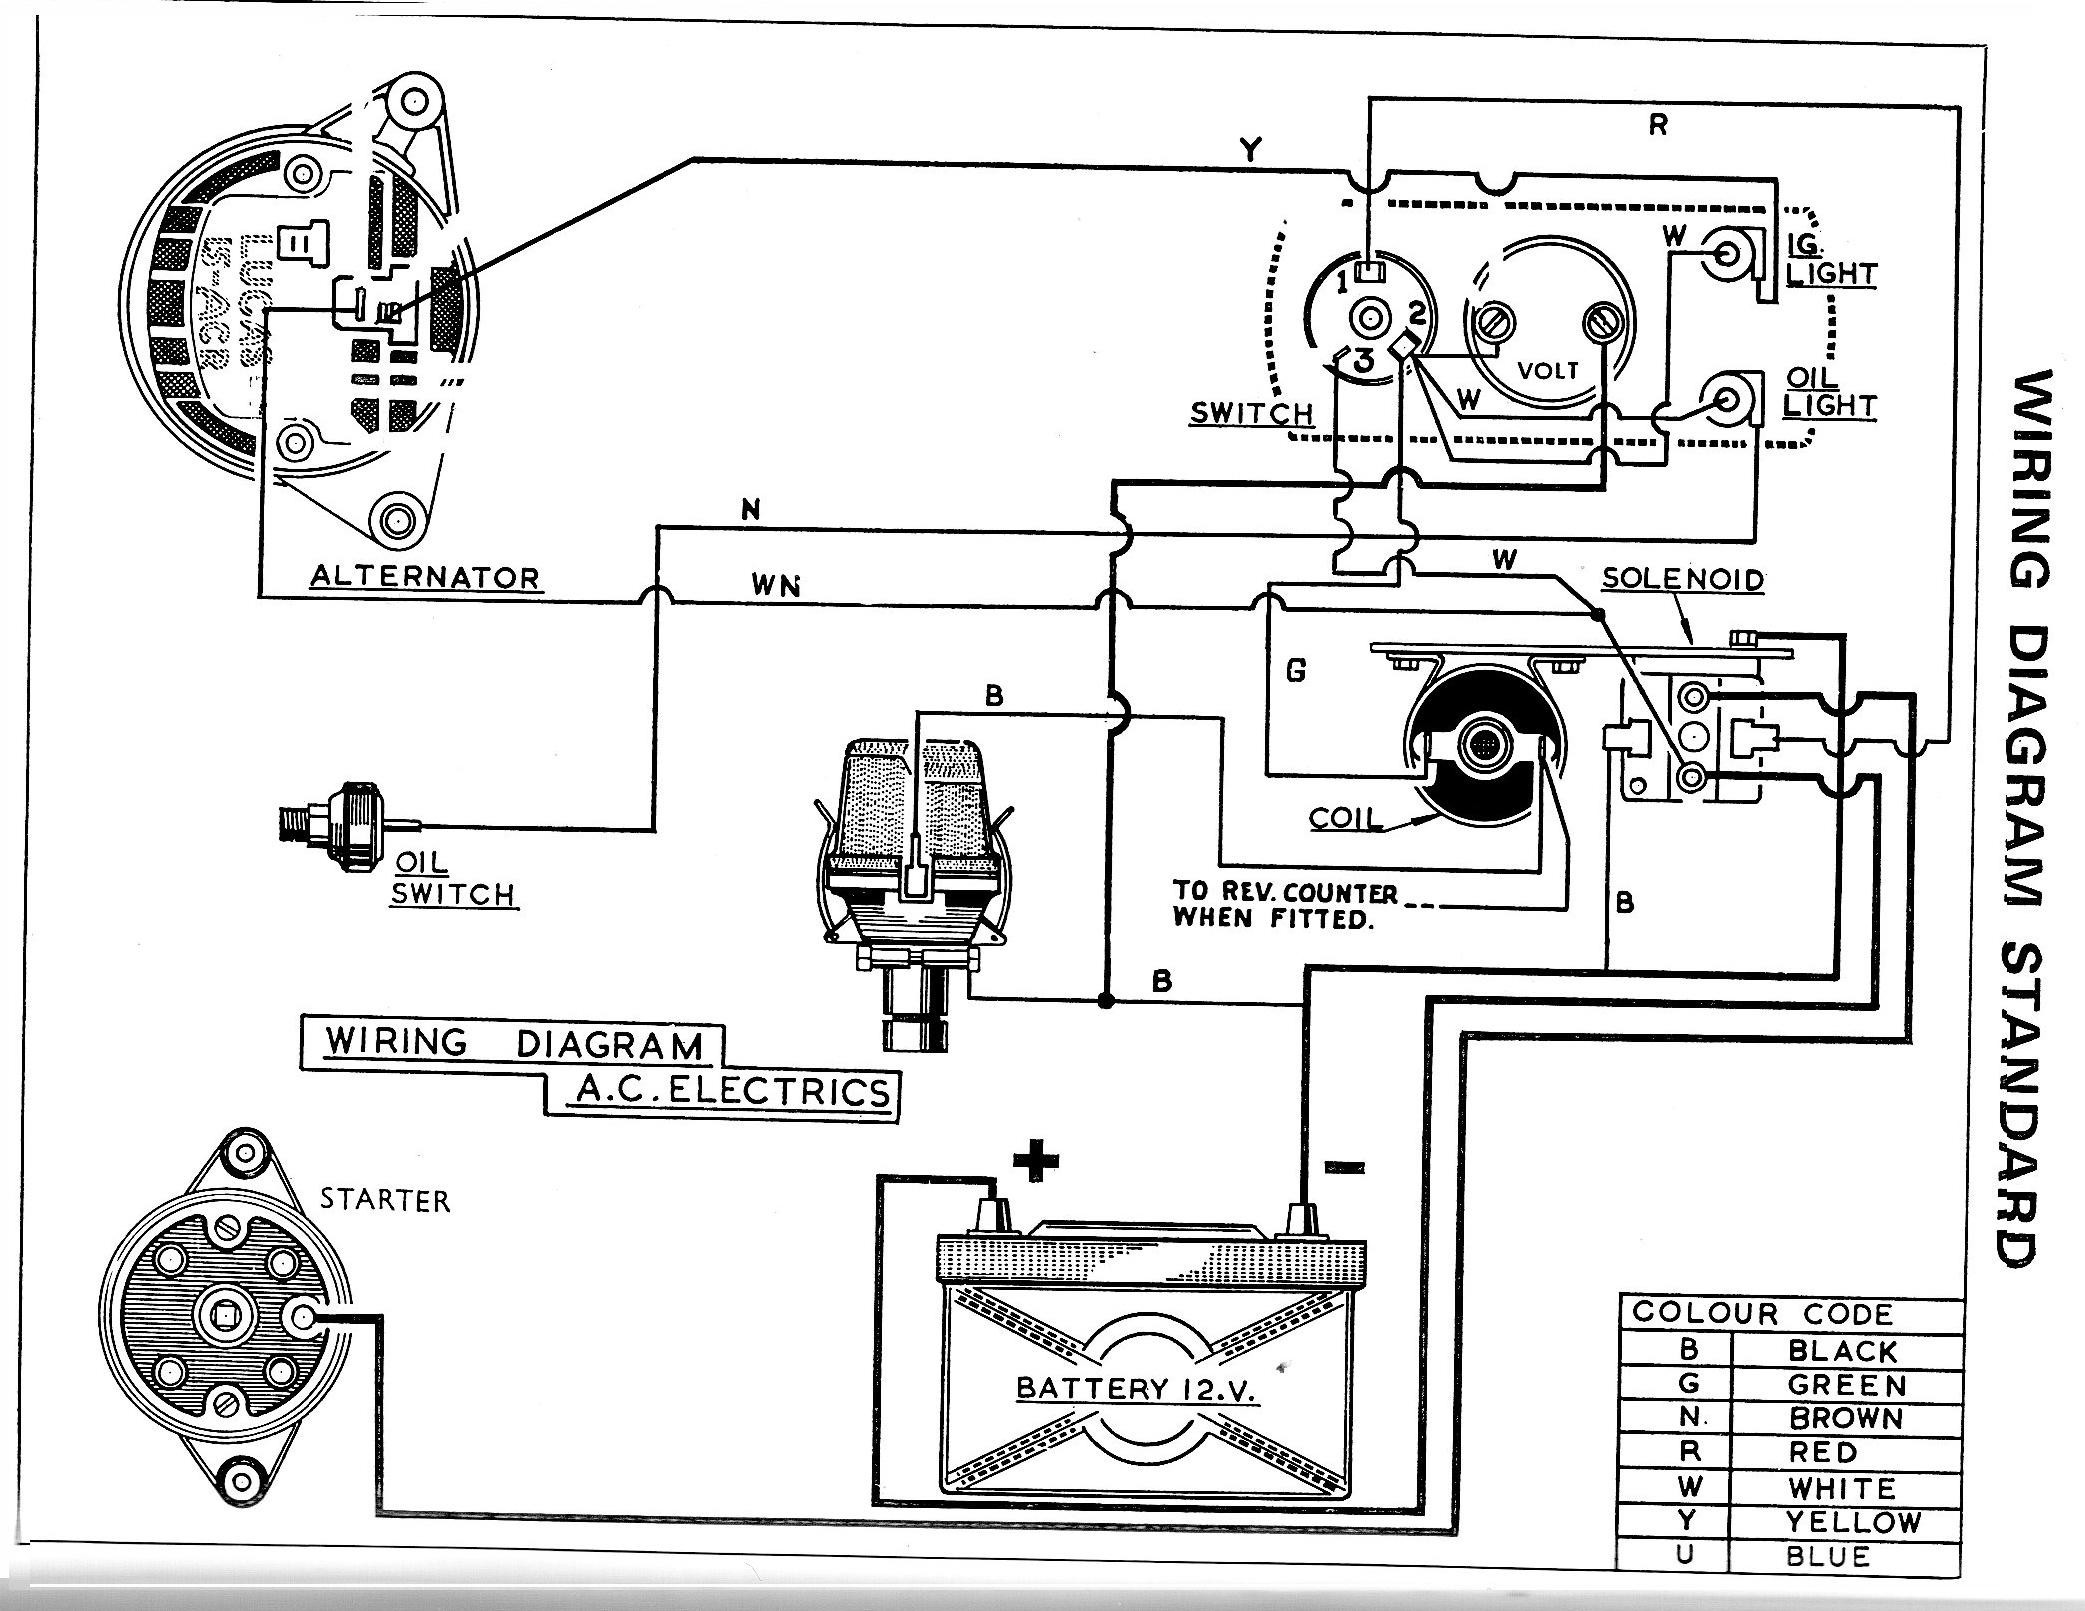 Ford Tractor Ignition Switch Wiring Diagram New Engine Wiring Lucas Ignition Switch Wiring Diagram Diagrams Engine